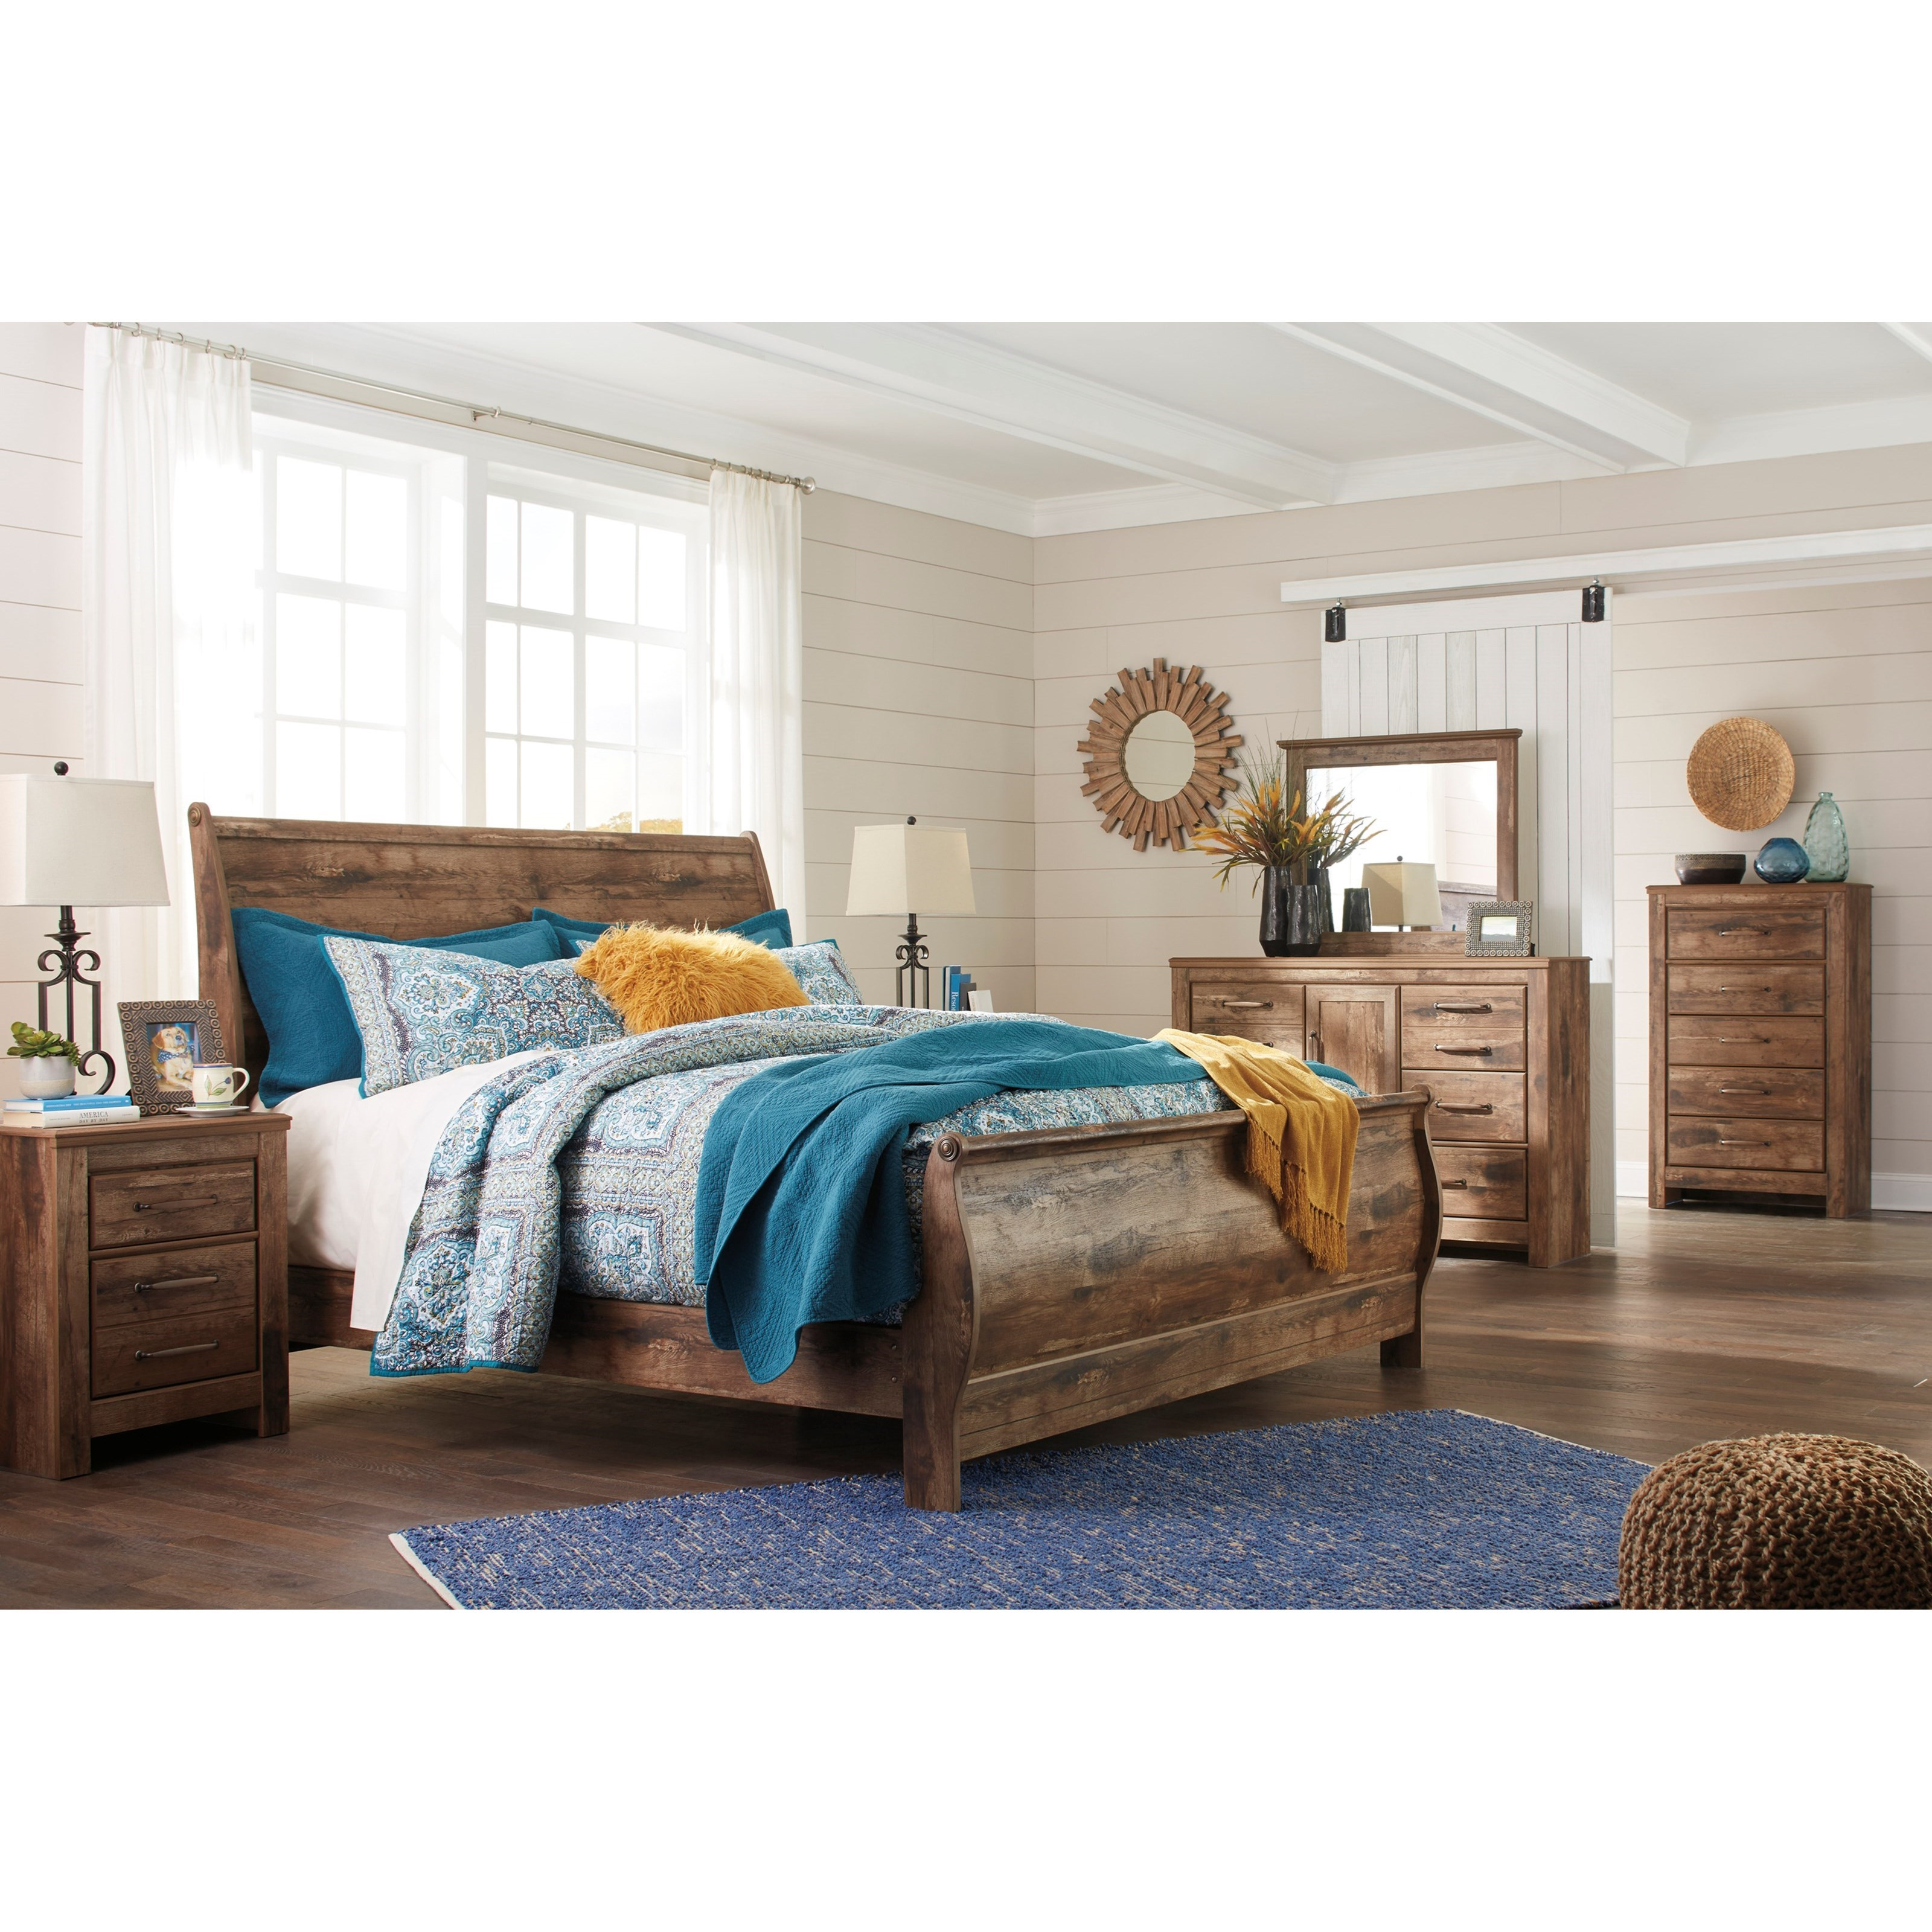 Signature Design By Ashley Blaneville Rustic Style King Sleigh Bed Del Sol Furniture Sleigh Beds